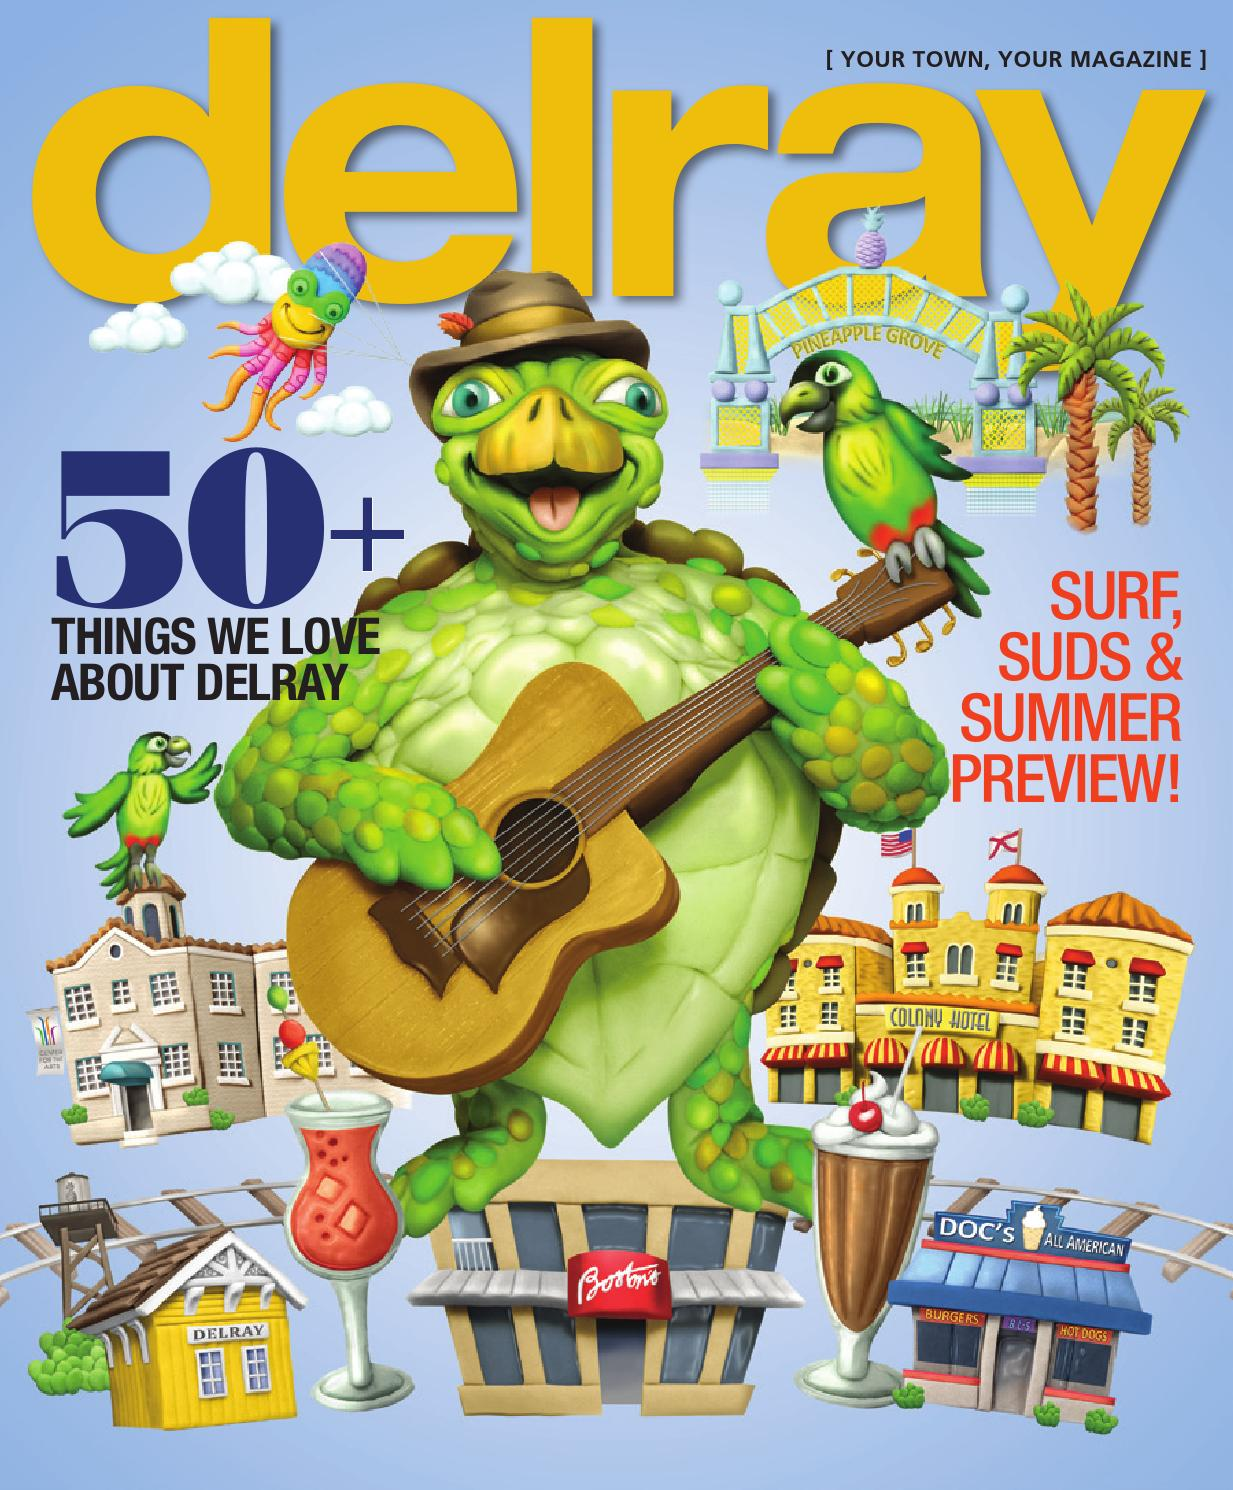 Delray Beach magazine March/April 2017 by JES Publishing - issuu